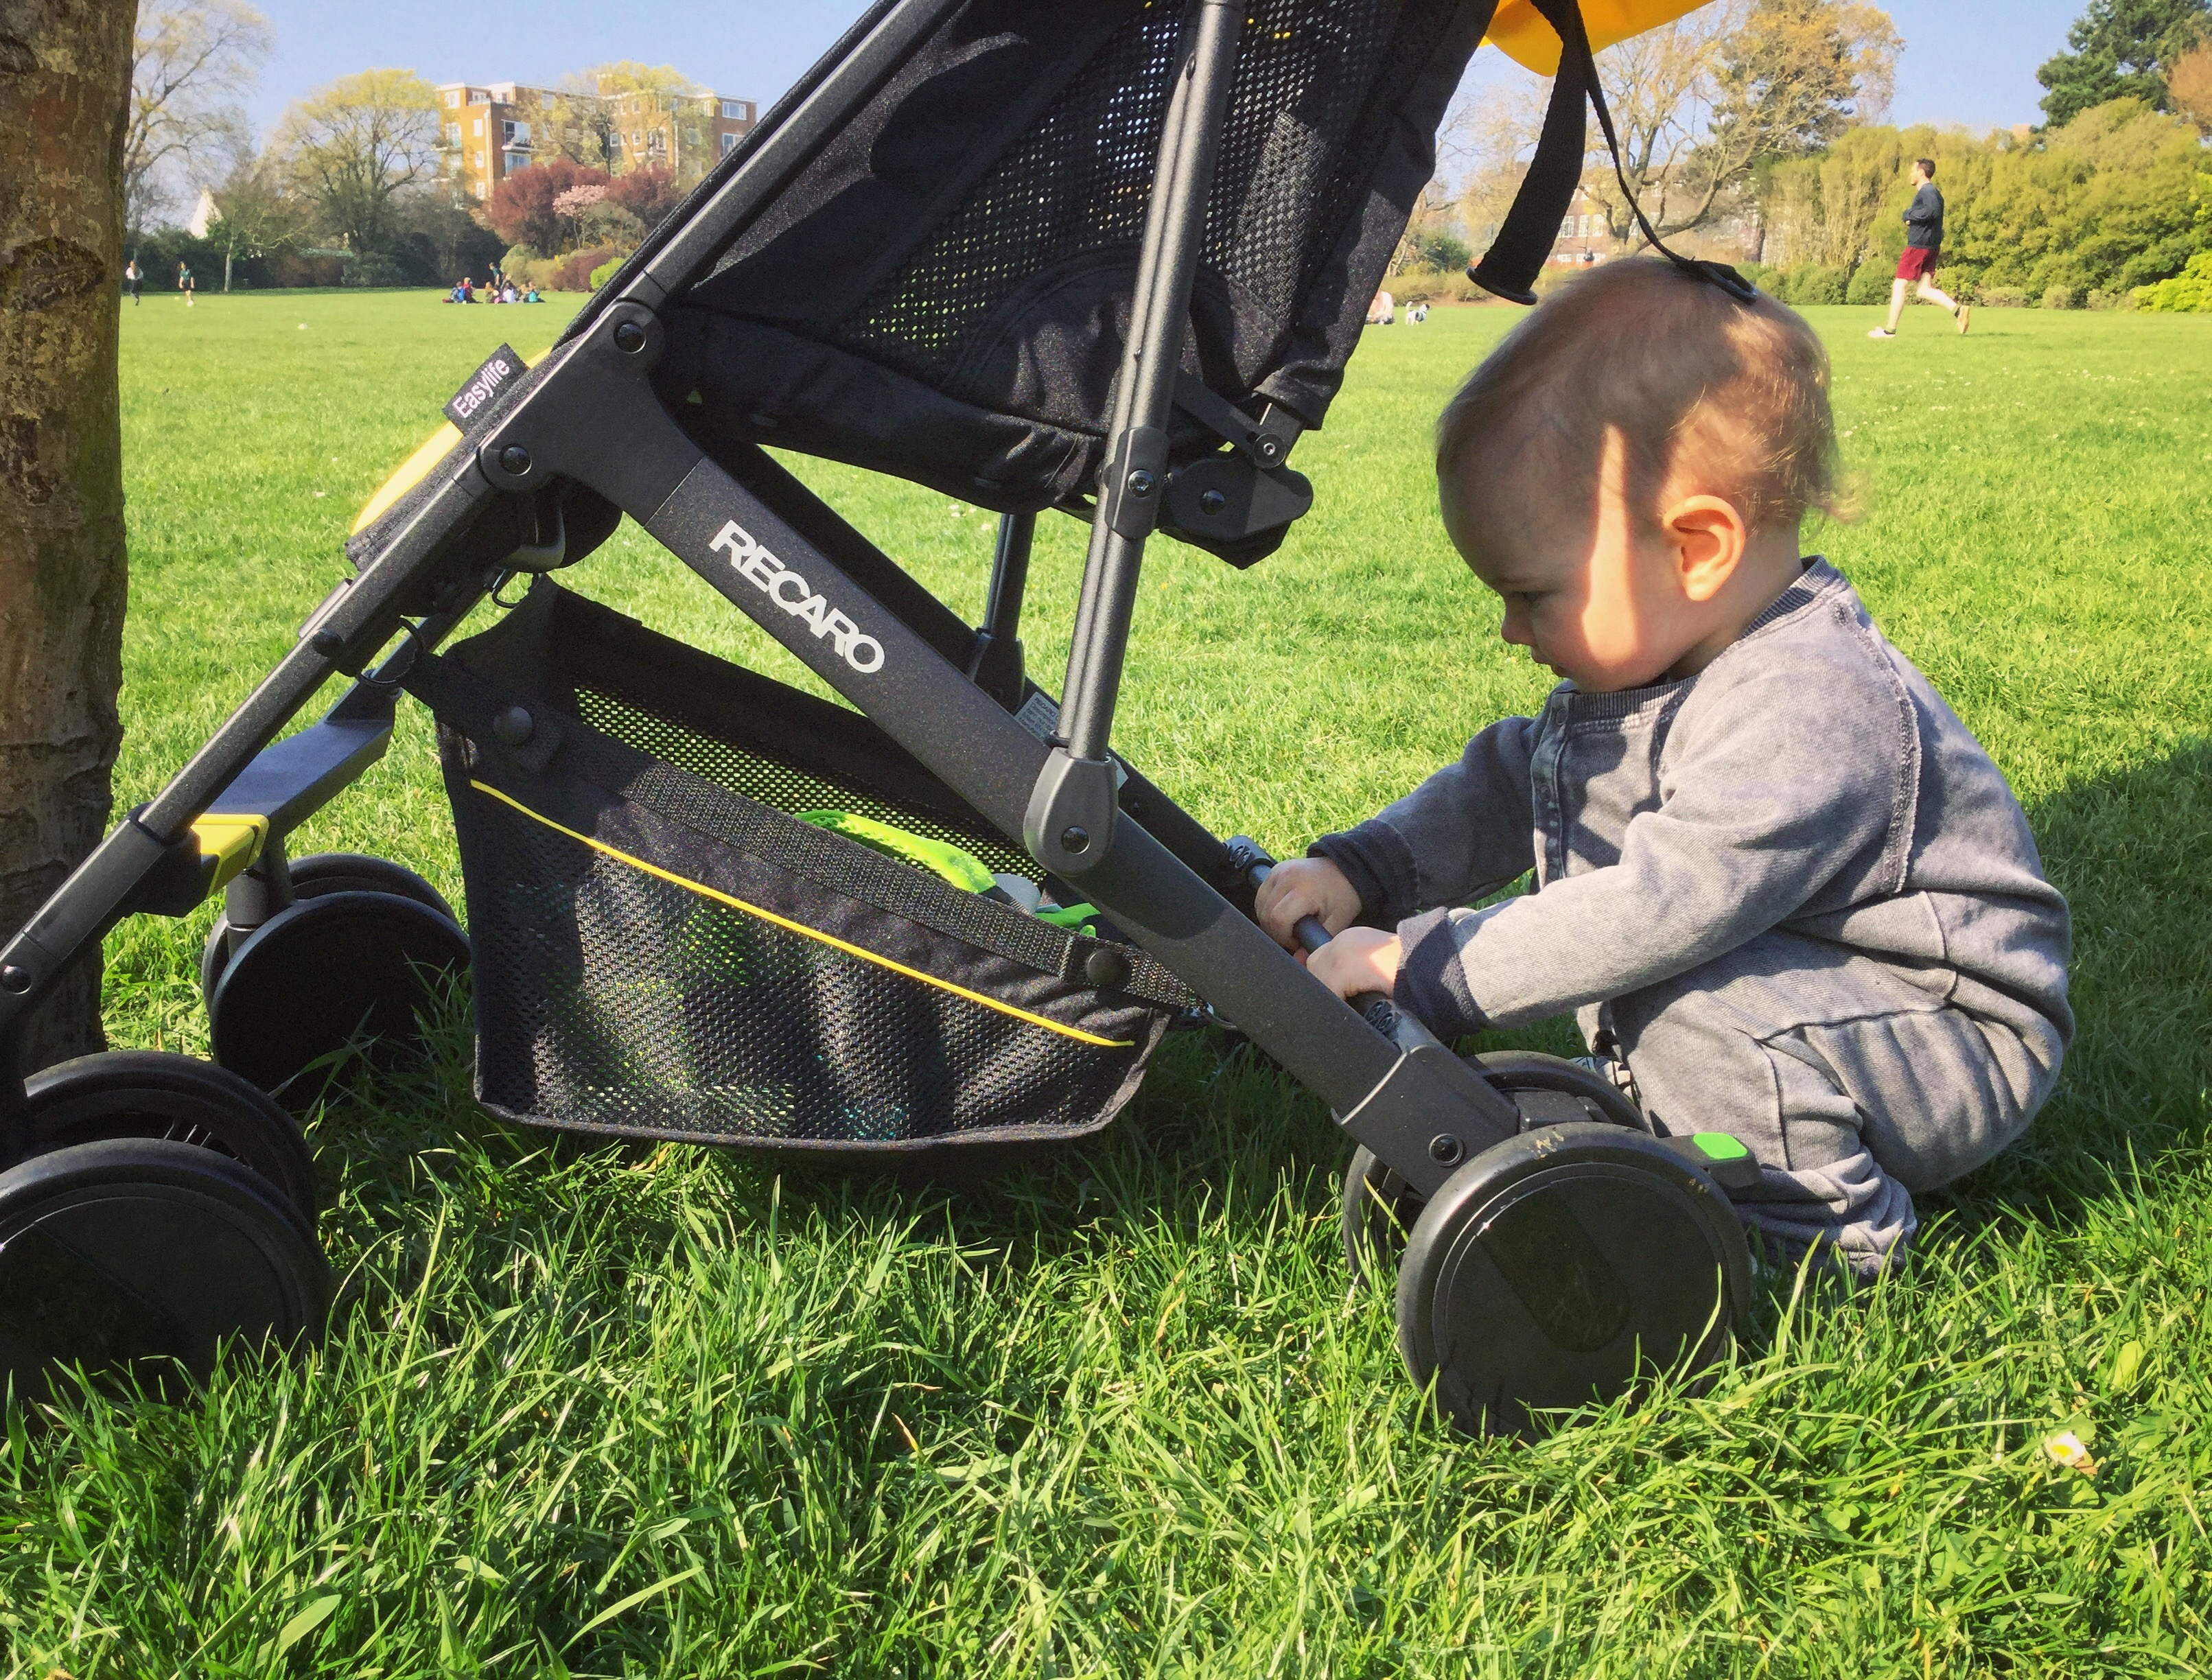 Recaro Easylife is compact, lightweight and stylish. Frankie and the Lamb review this buggy for travel and space saving kit.